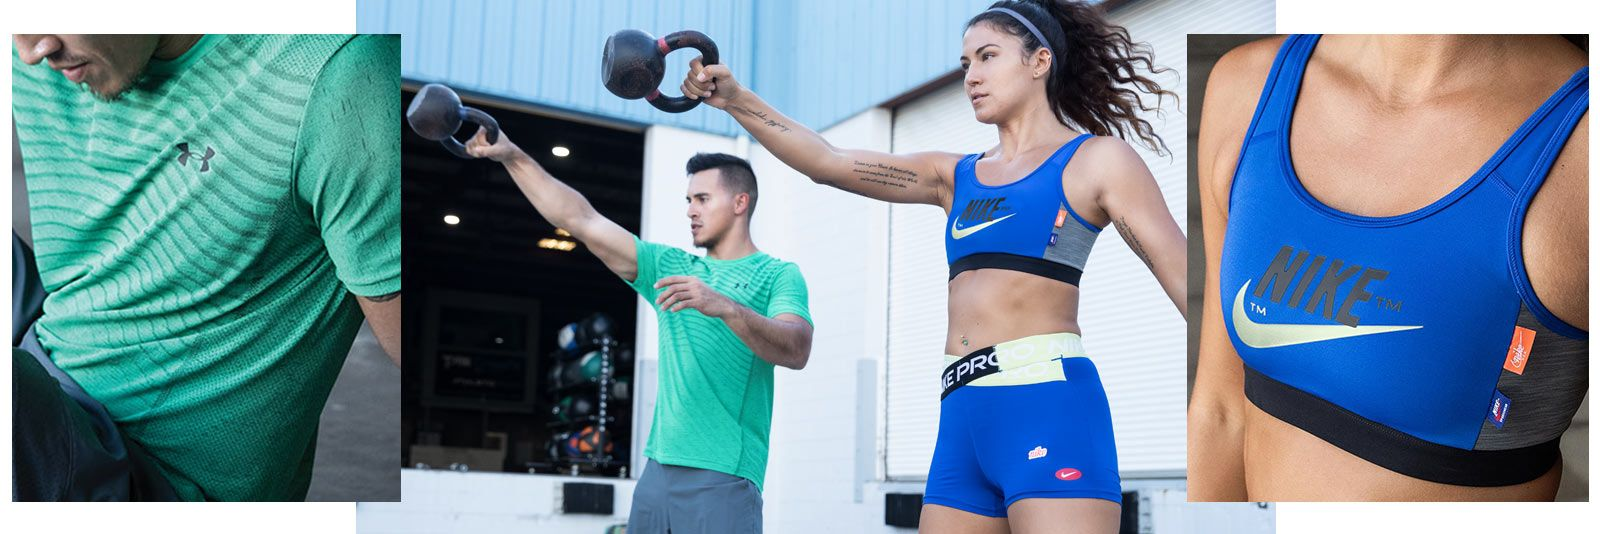 A man and a woman doing a kettlebell exercise.